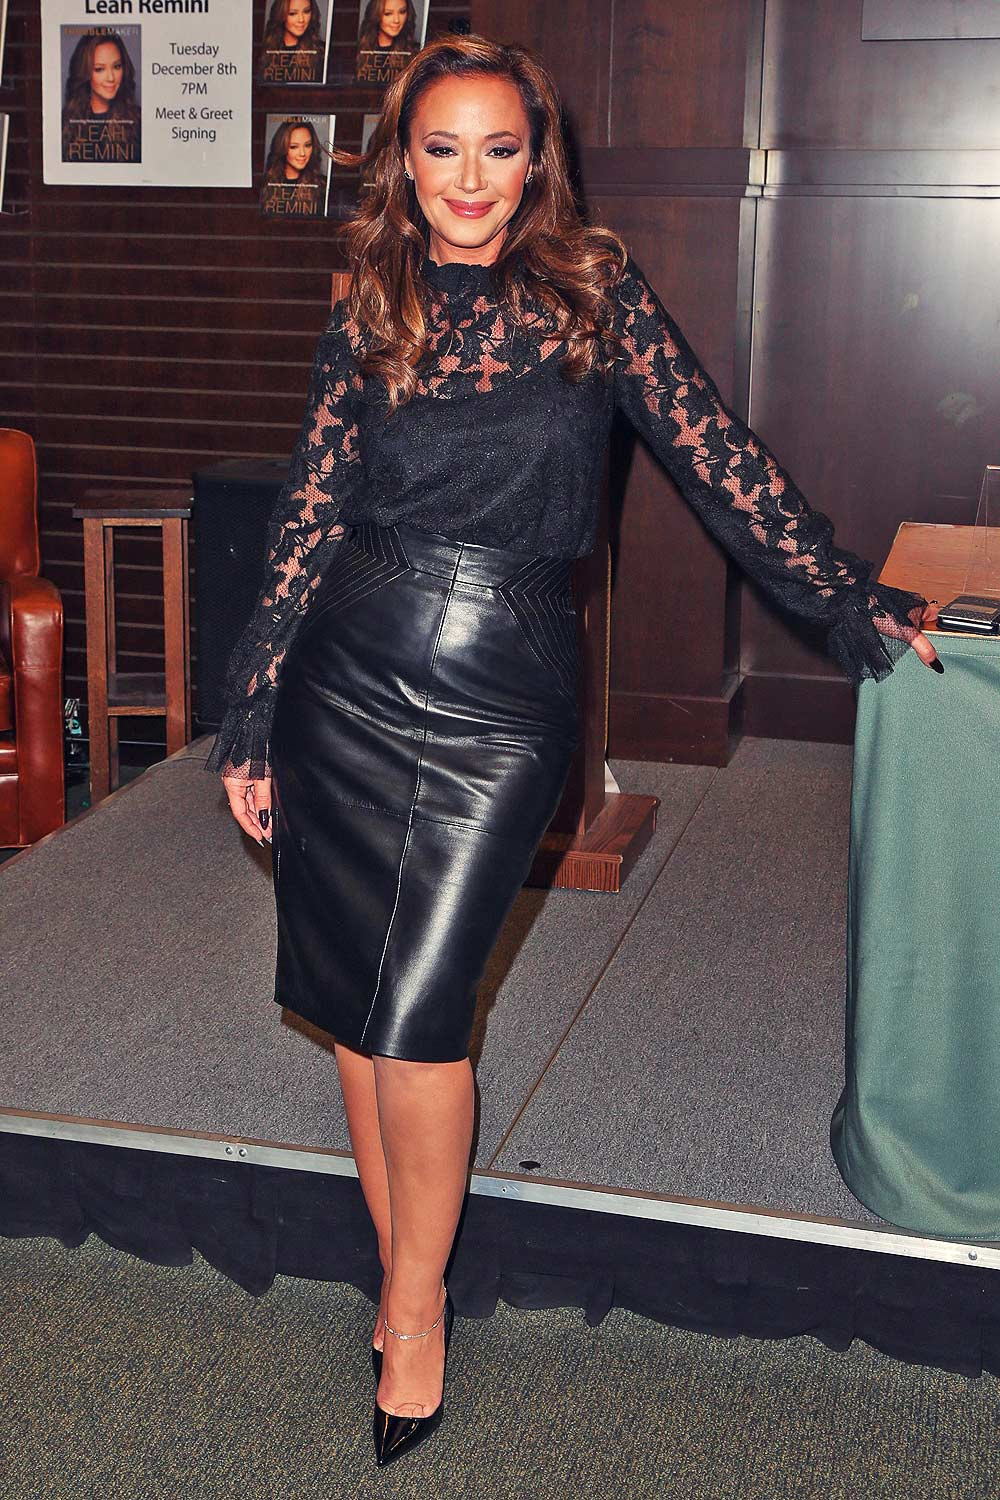 from Chase leah remini in leather skirt